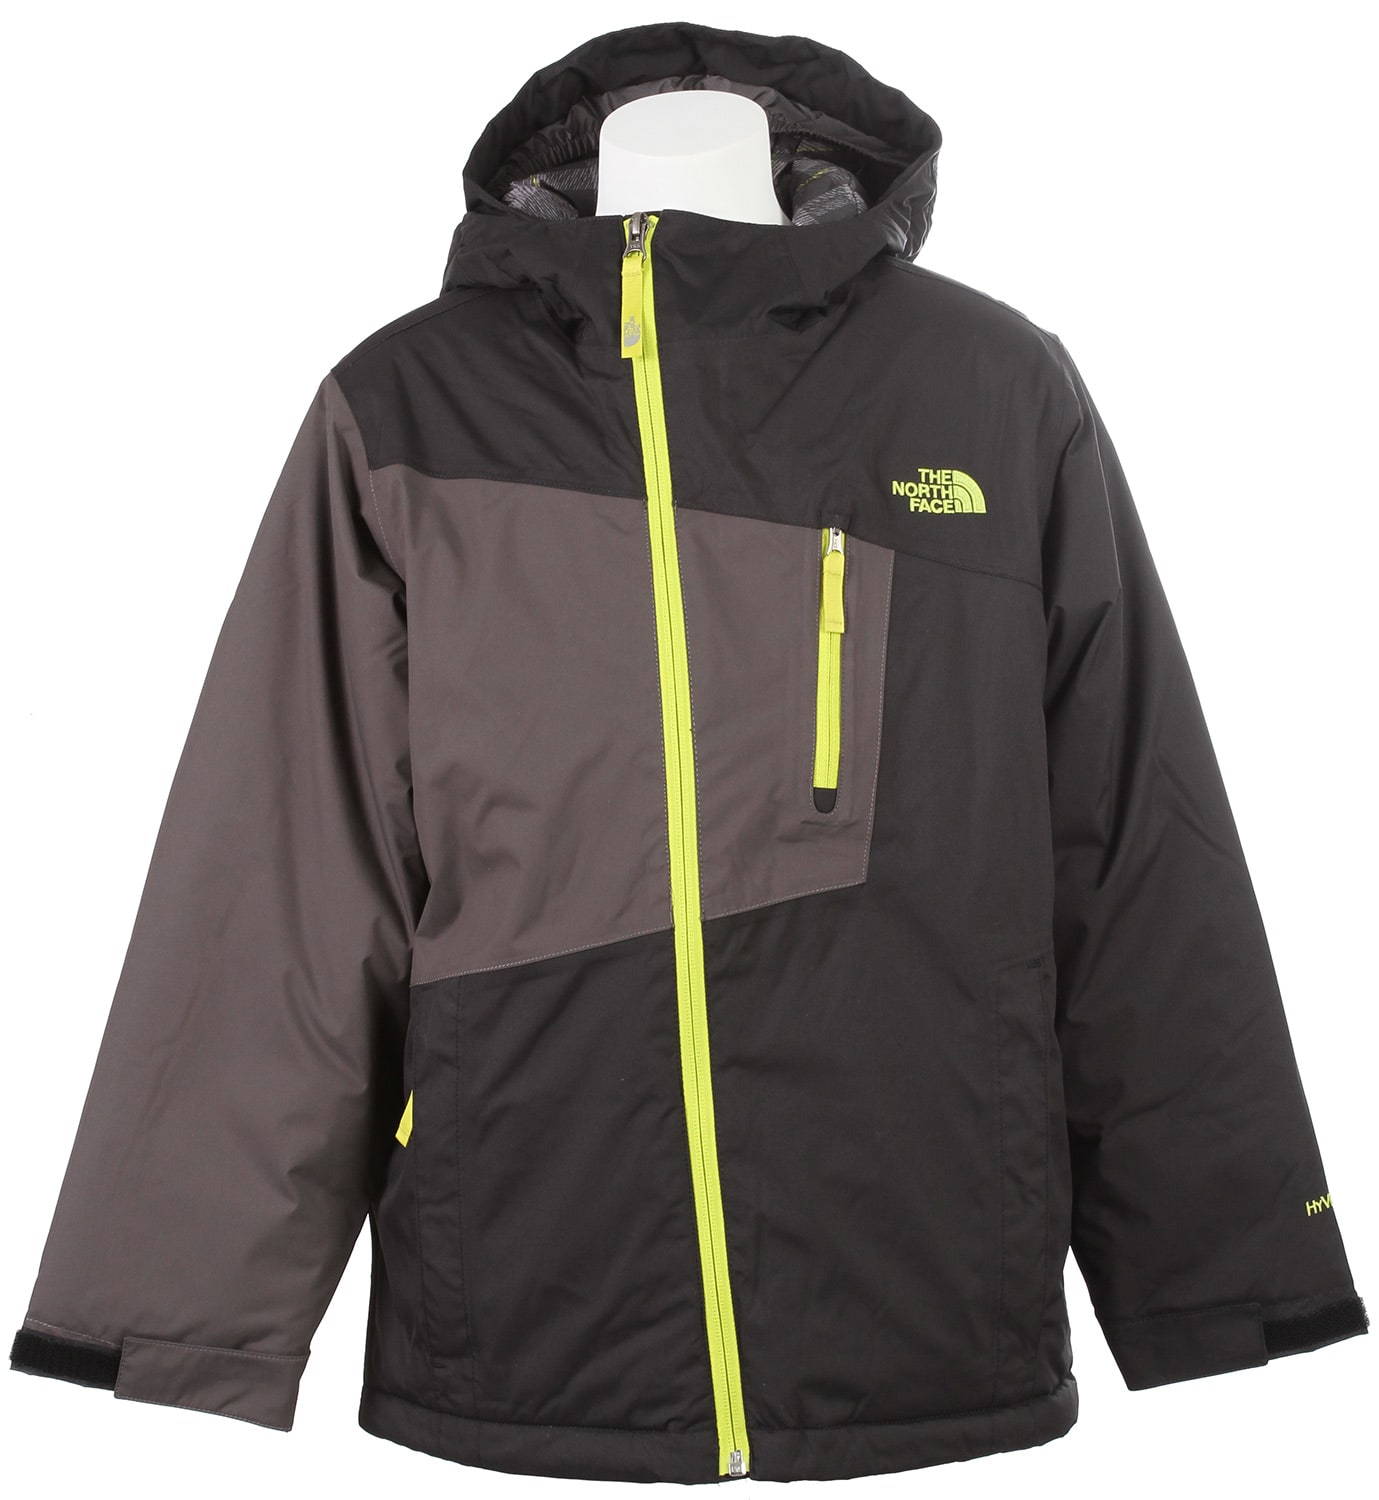 On Sale The North Face Gonzo Insulated Ski Jacket - Kids ...